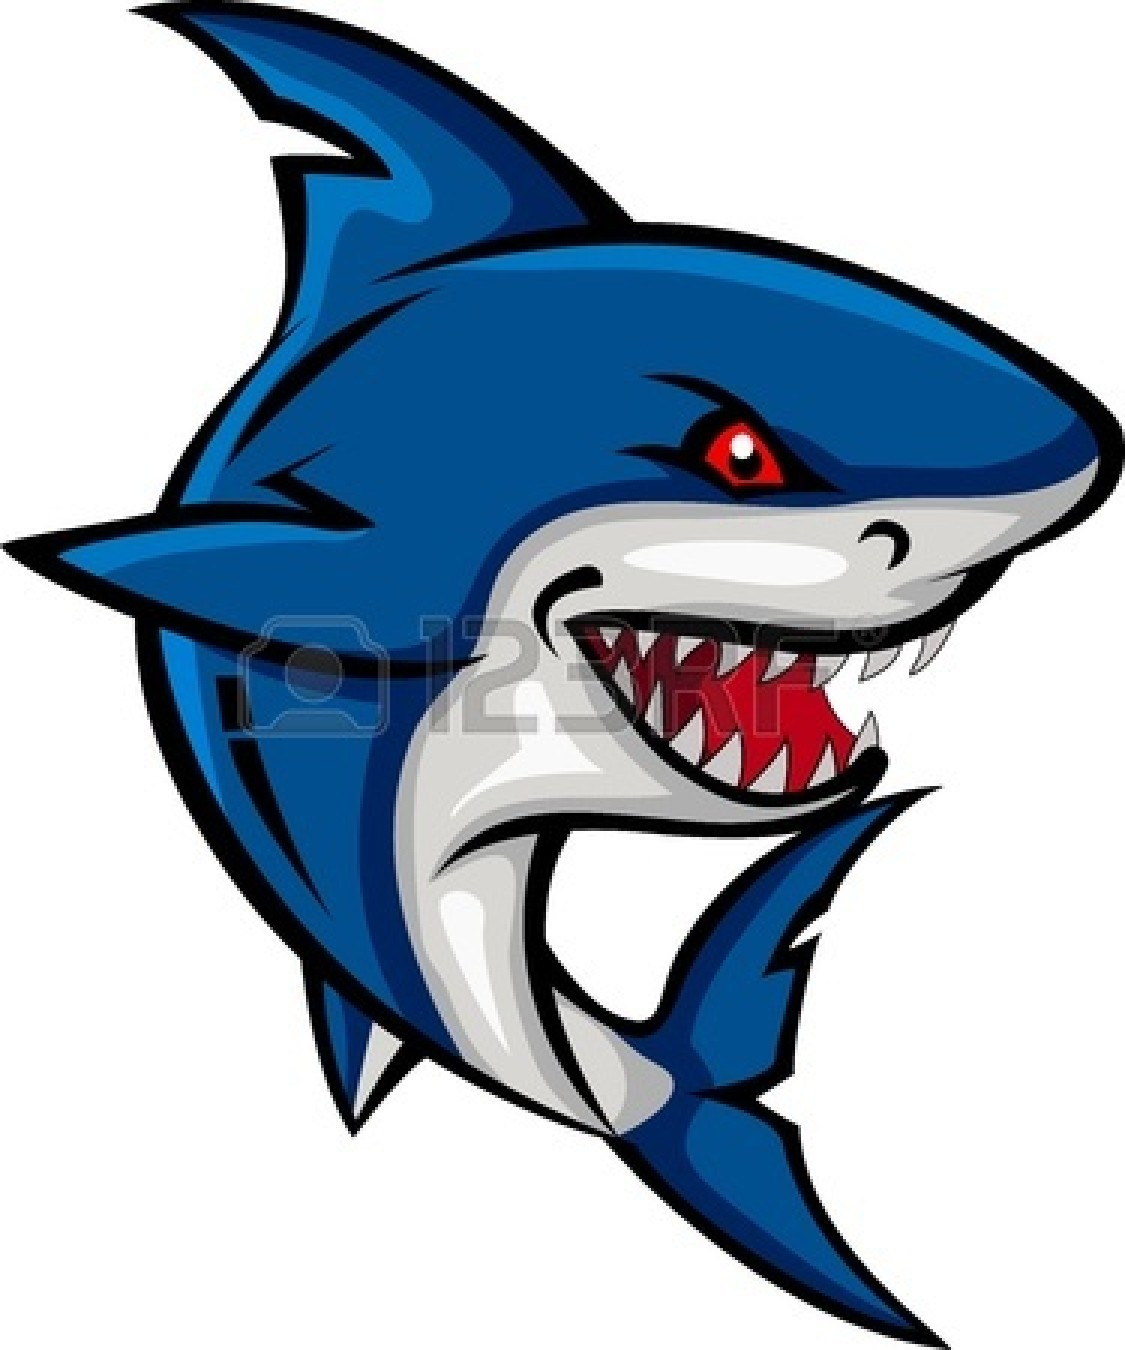 Angry shark clipart - photo#4